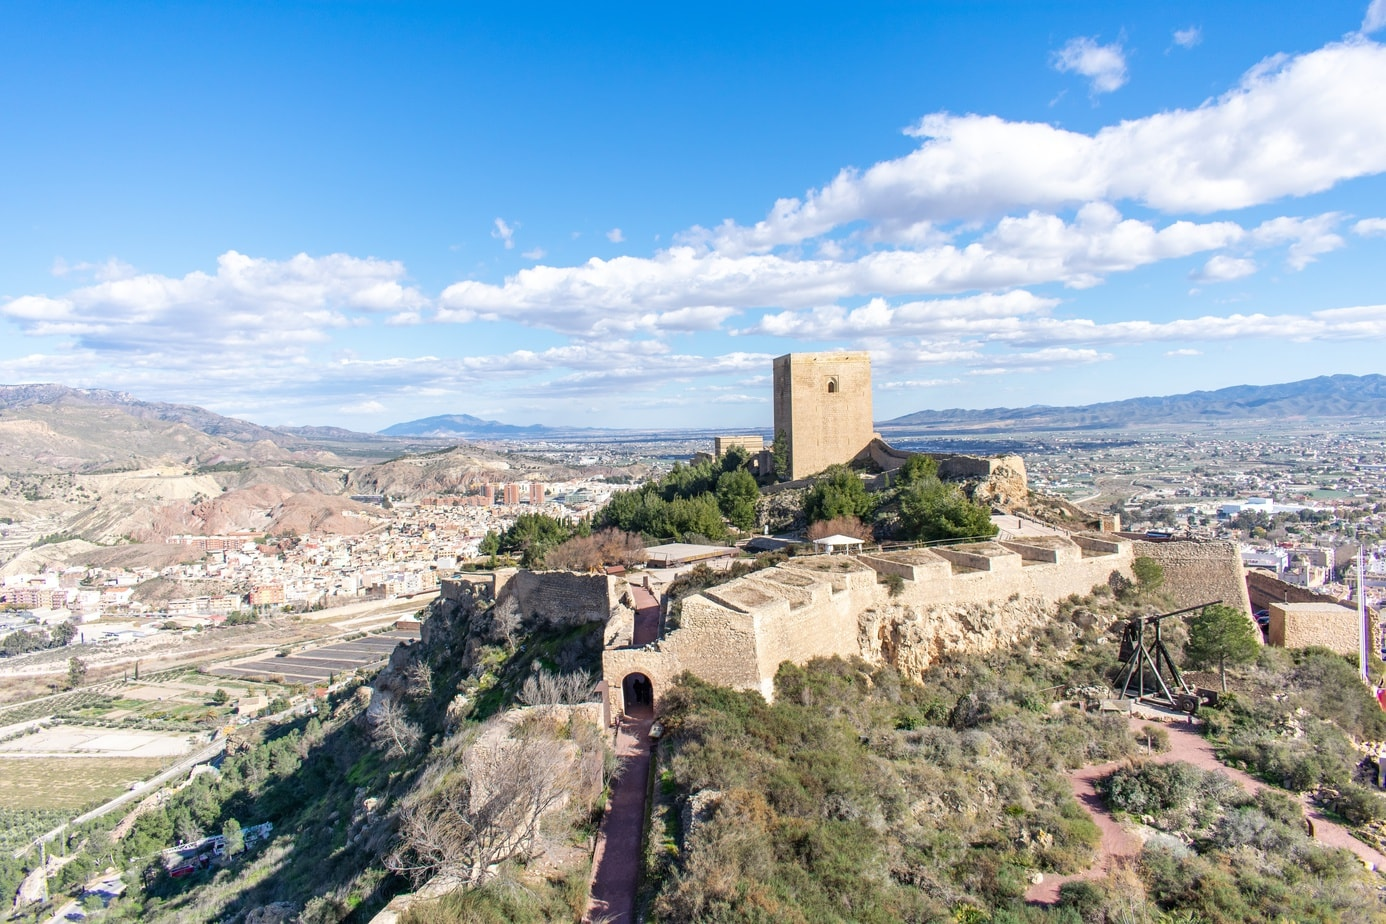 Lorca is one of the best day trips from Murcia